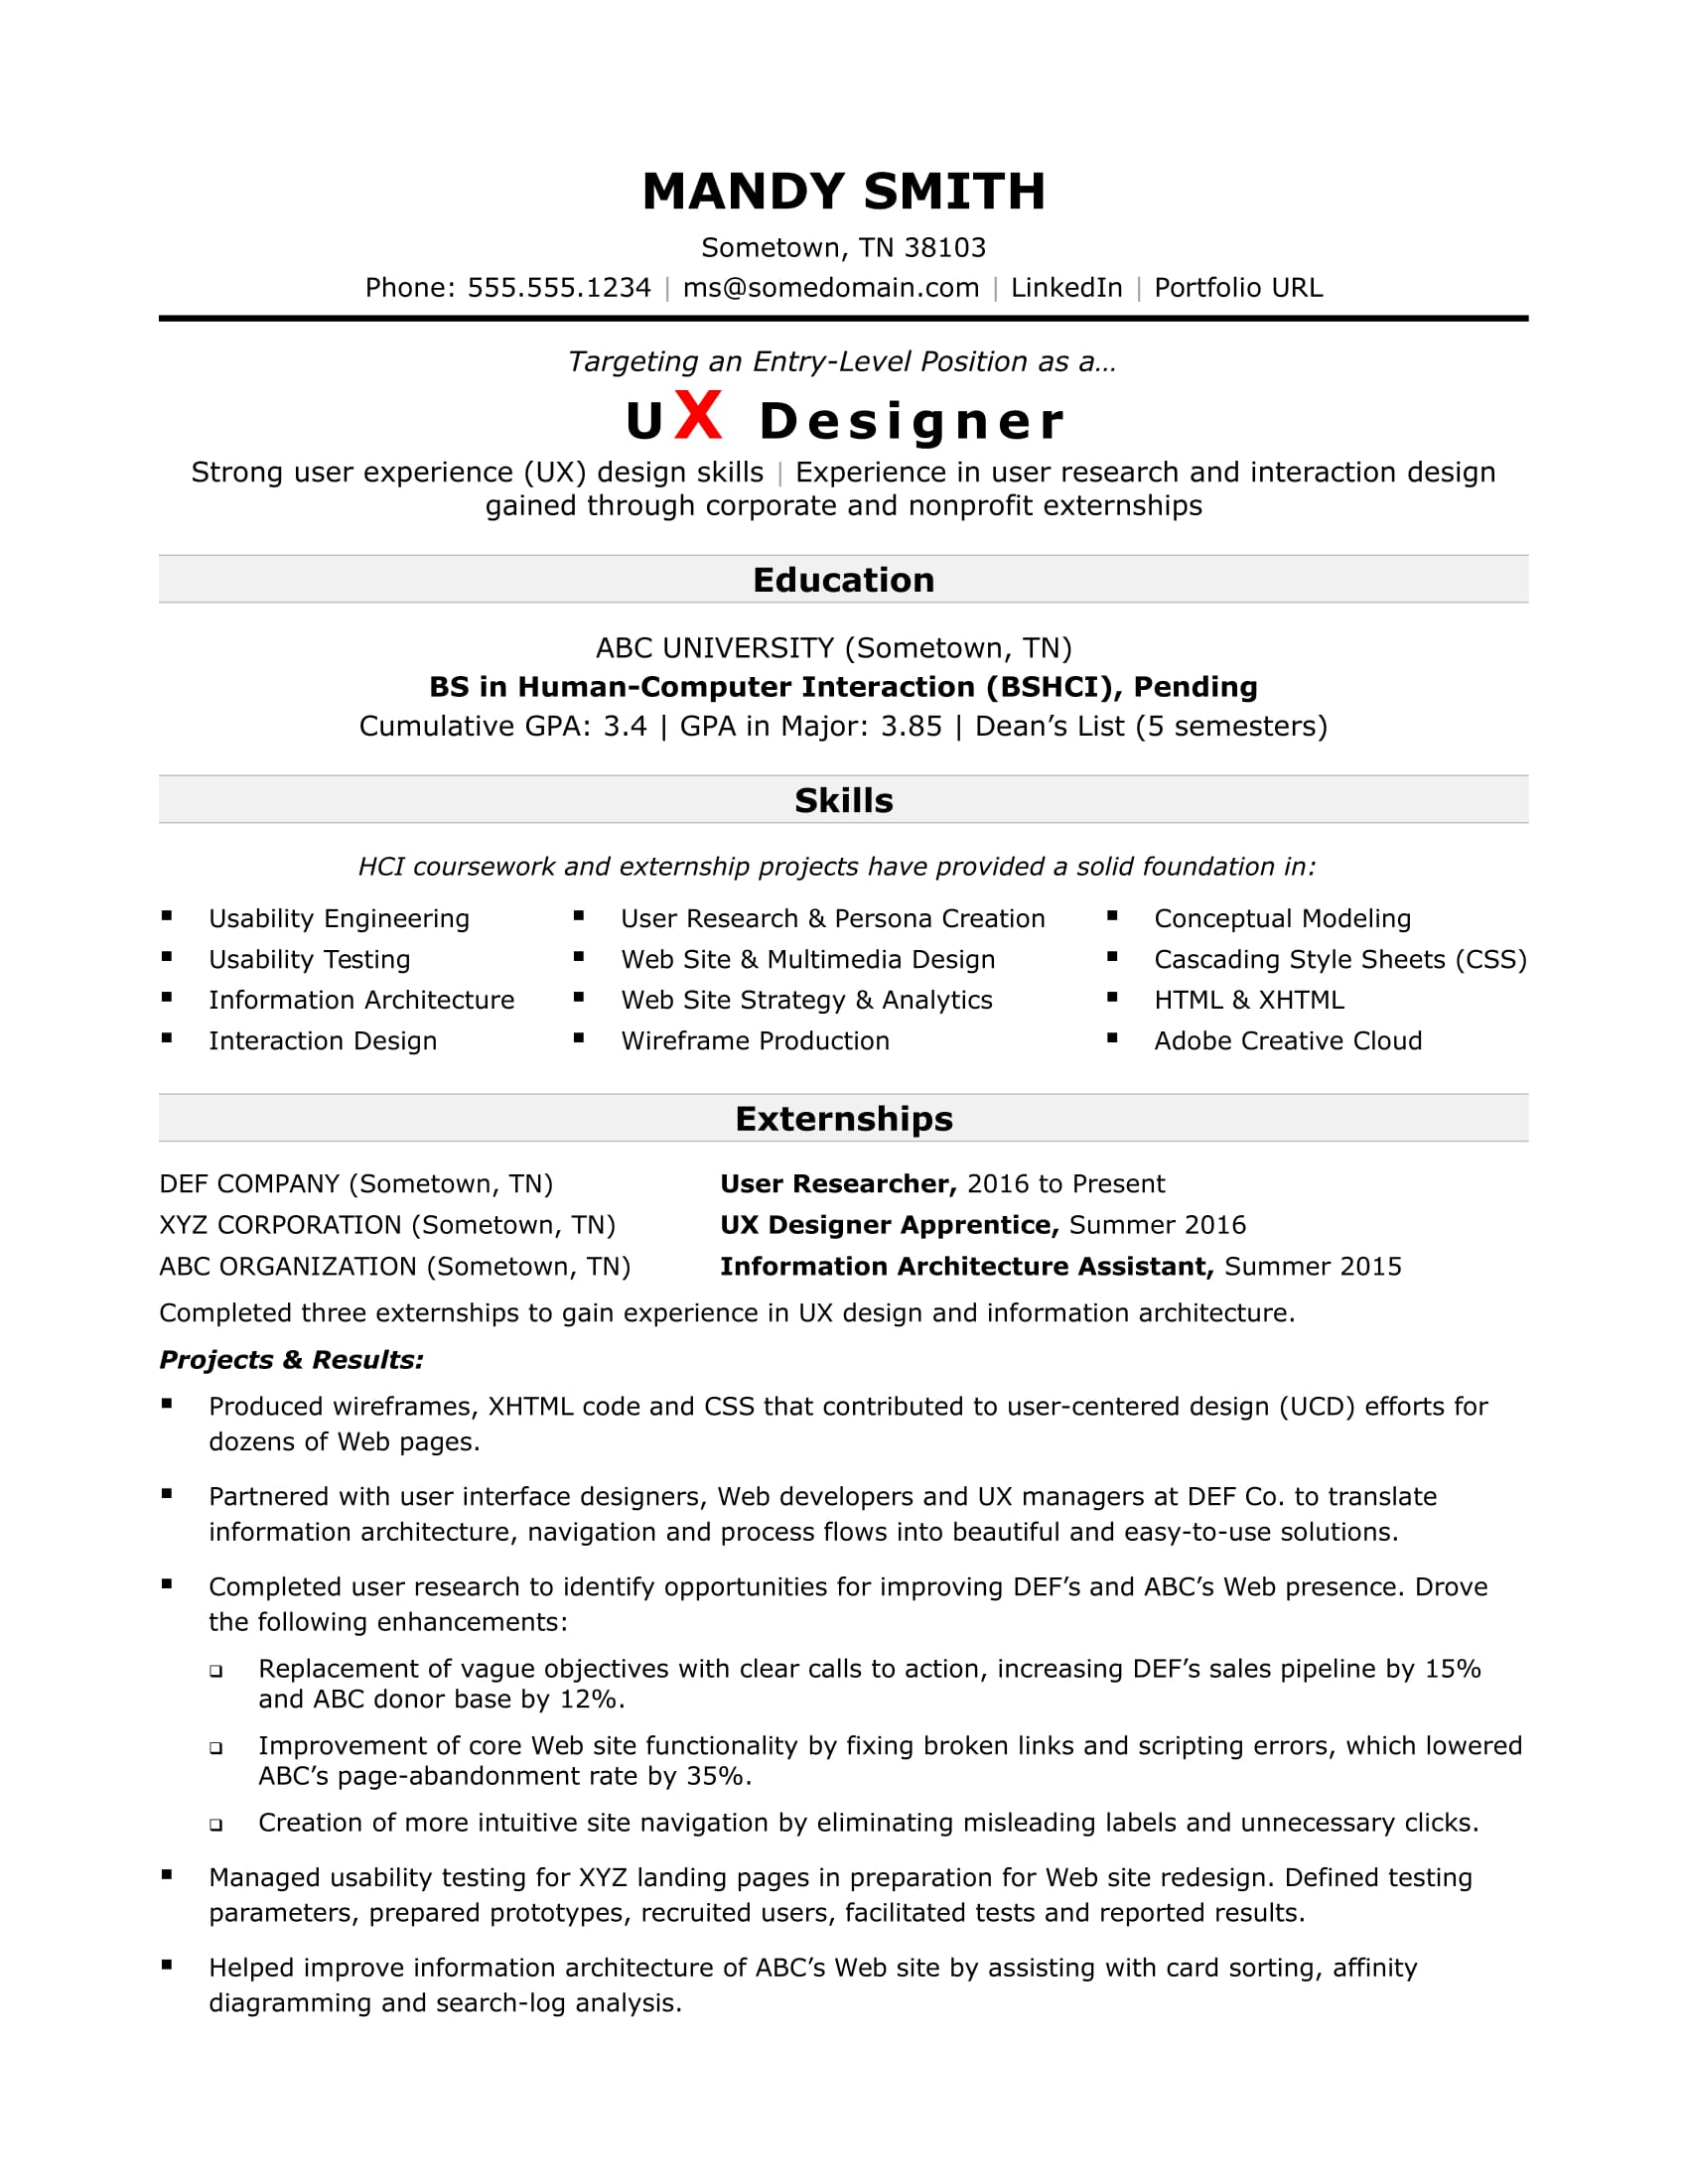 Sample Resume for an EntryLevel UX Designer Monstercom